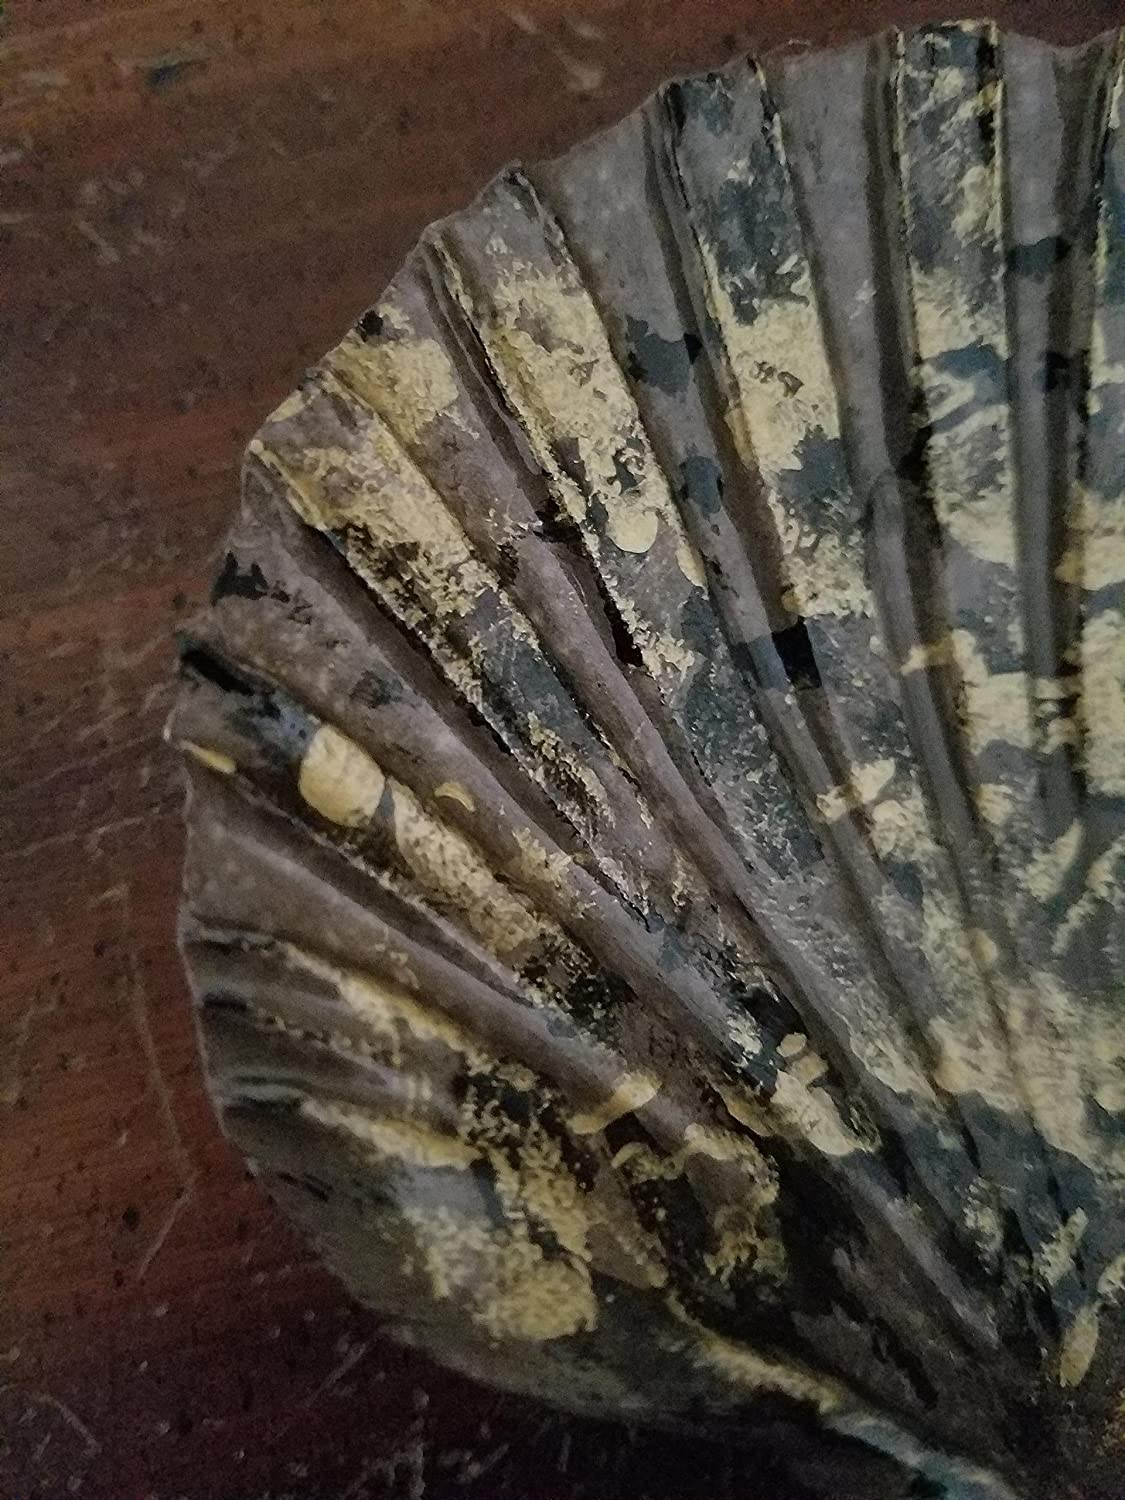 Decorative Soap Dish and Gold Bronze Nautical Themed Gift Hand Painted Scallop Shell Jewelry Key Black